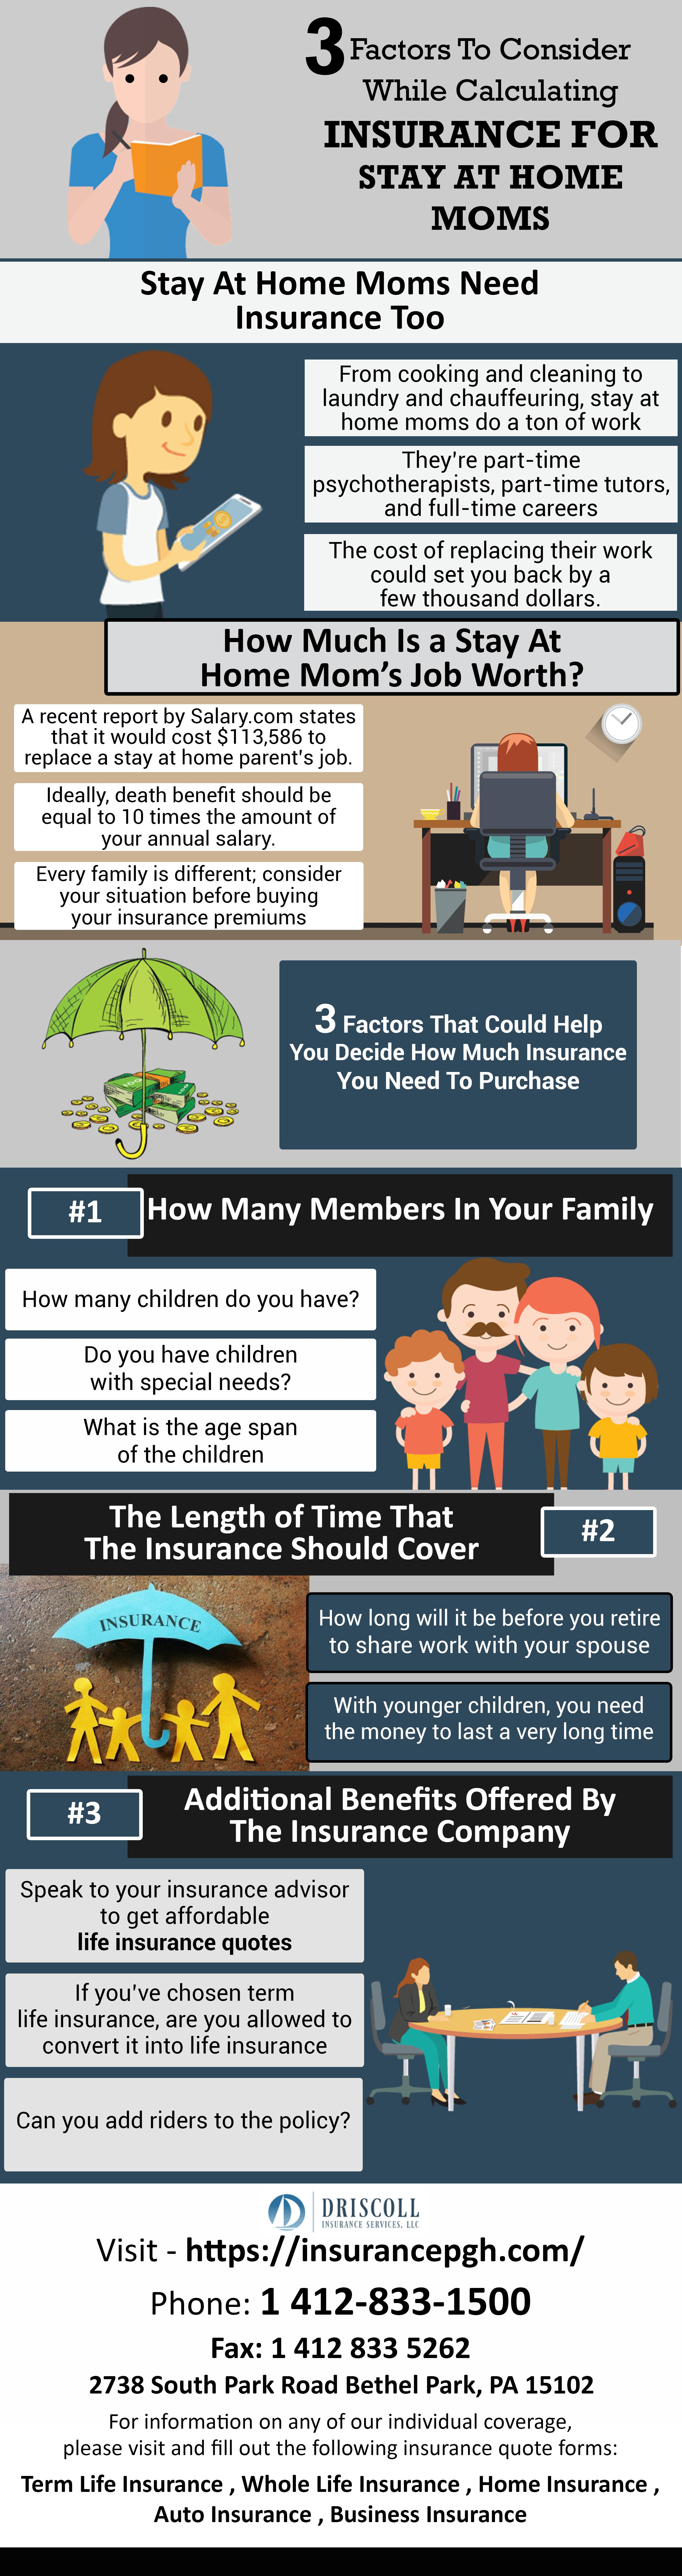 3 Factors to Decide When Calculating Insurance For Stay At